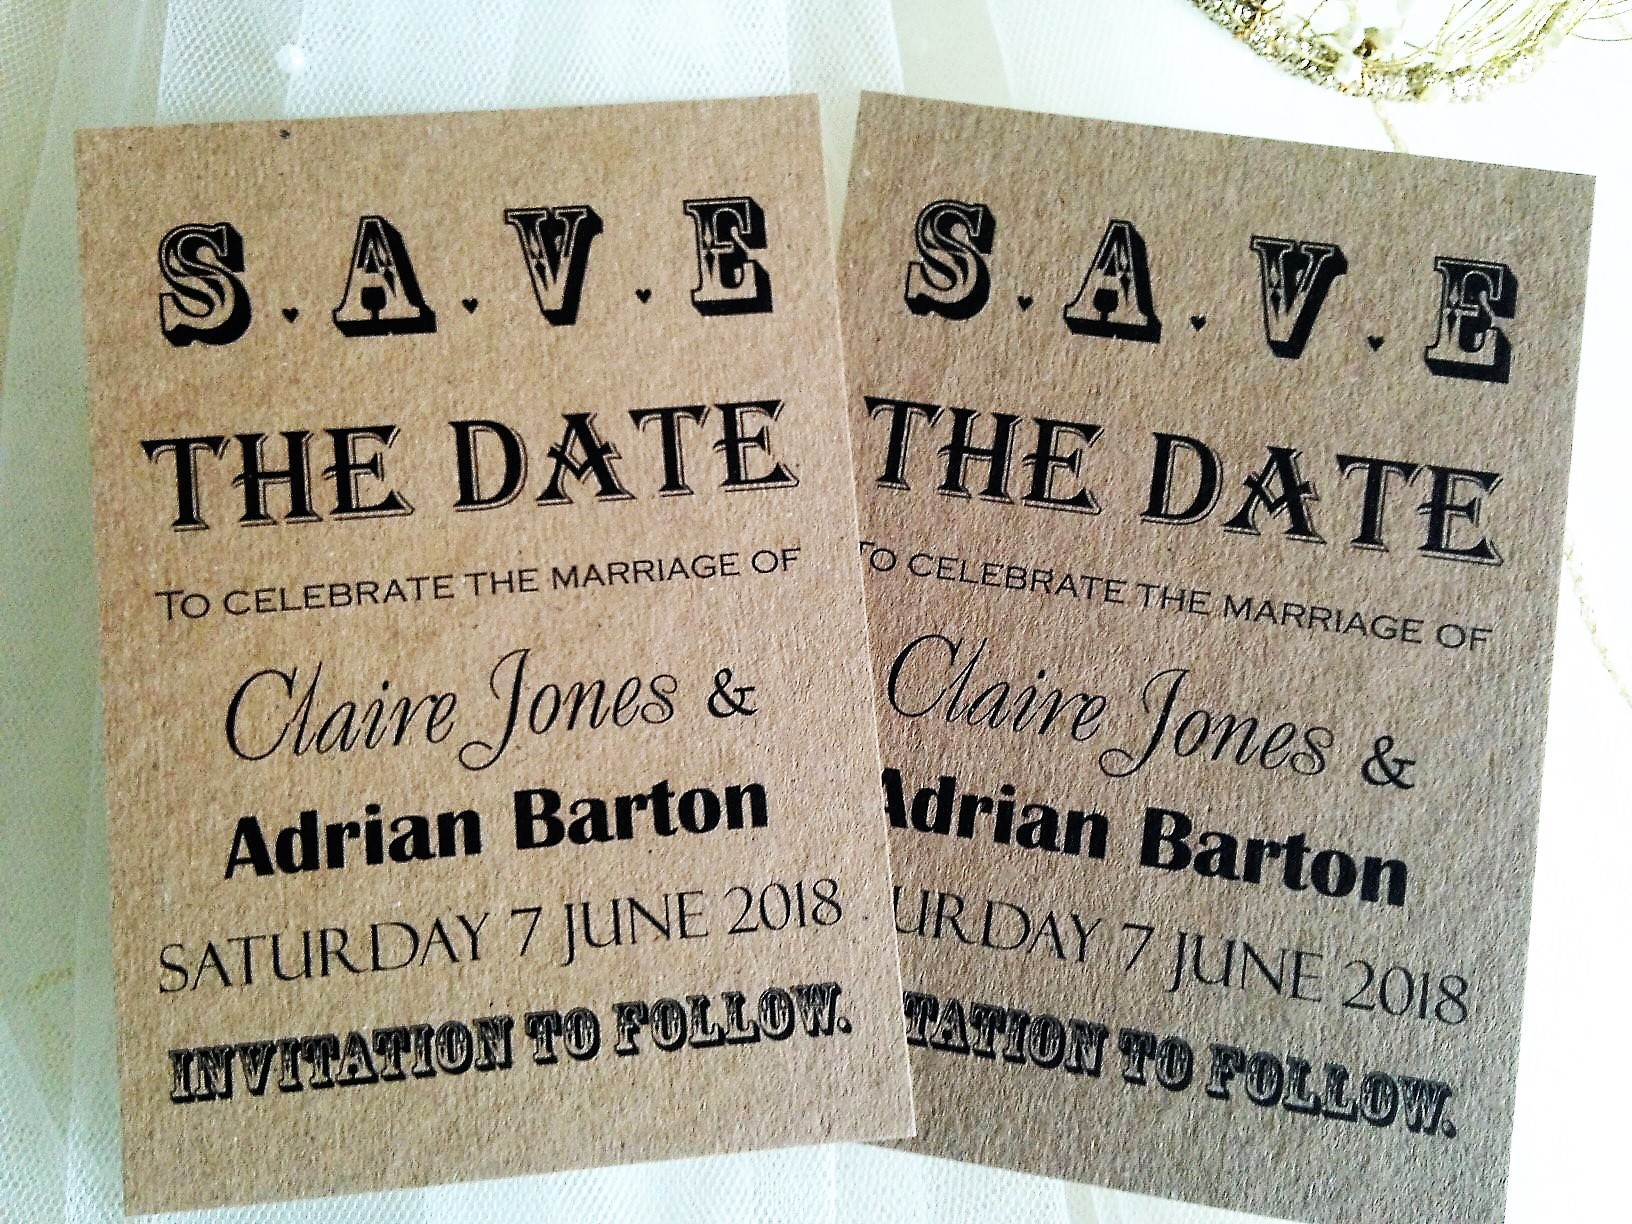 Save the date card in Perth